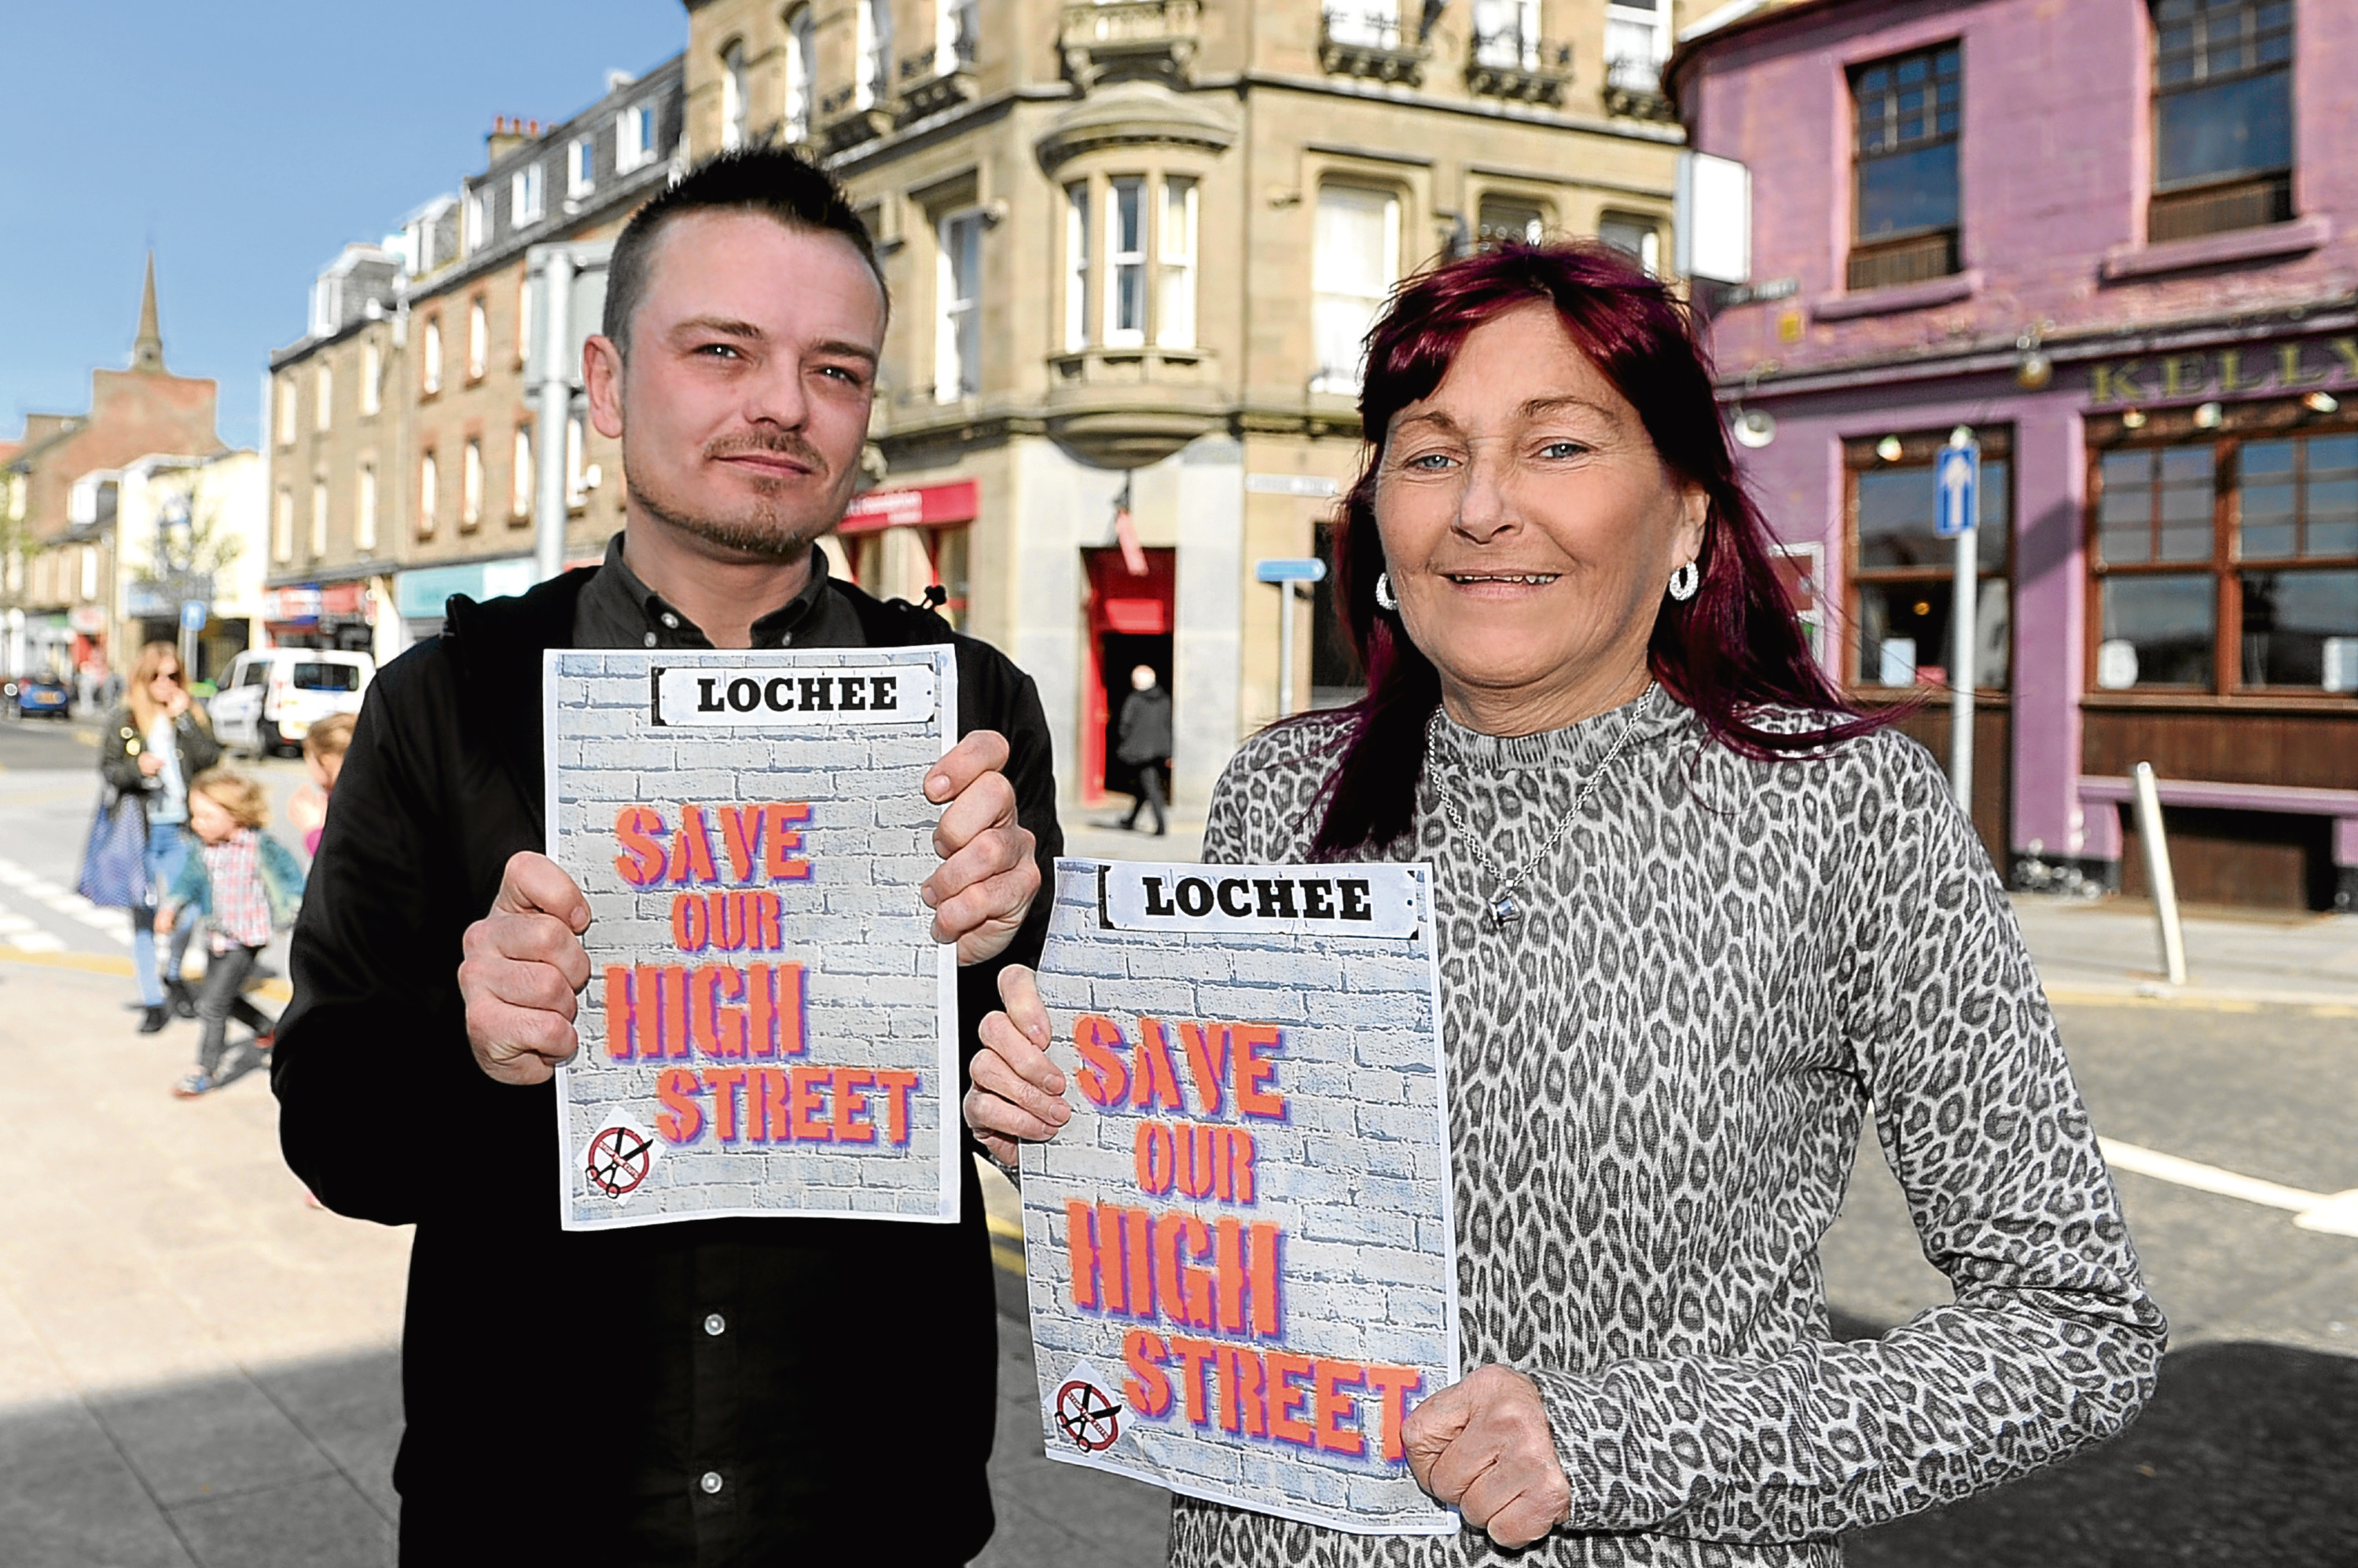 Myles McCallum and Jeanette Whitton of the Save Our High Street campaign.